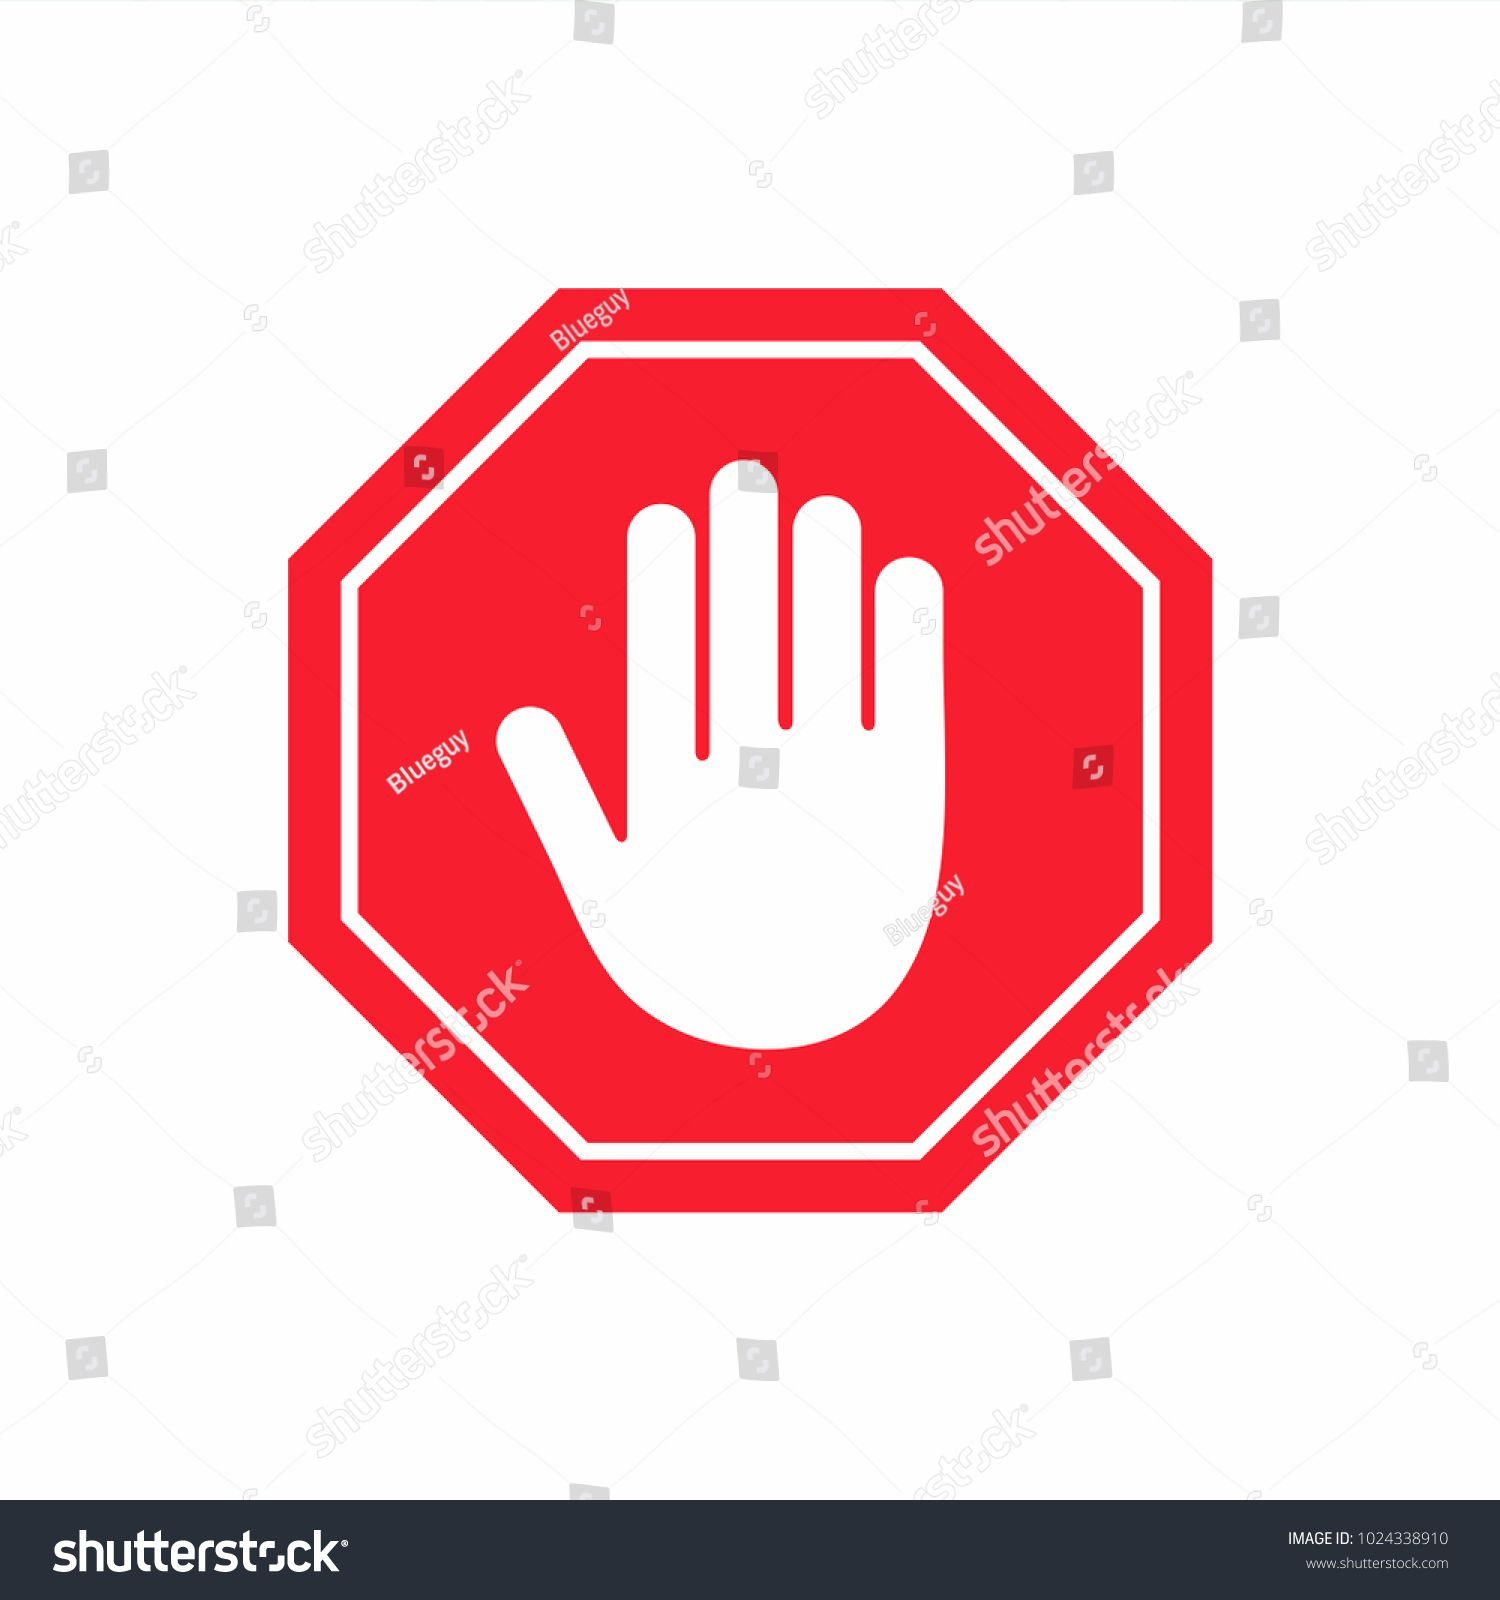 Red Stop Sign And Hand Signal Vector Illustration Isolated On Transparent Background Stock I Stop Sign Professional Business Cards Logo Vector Illustration